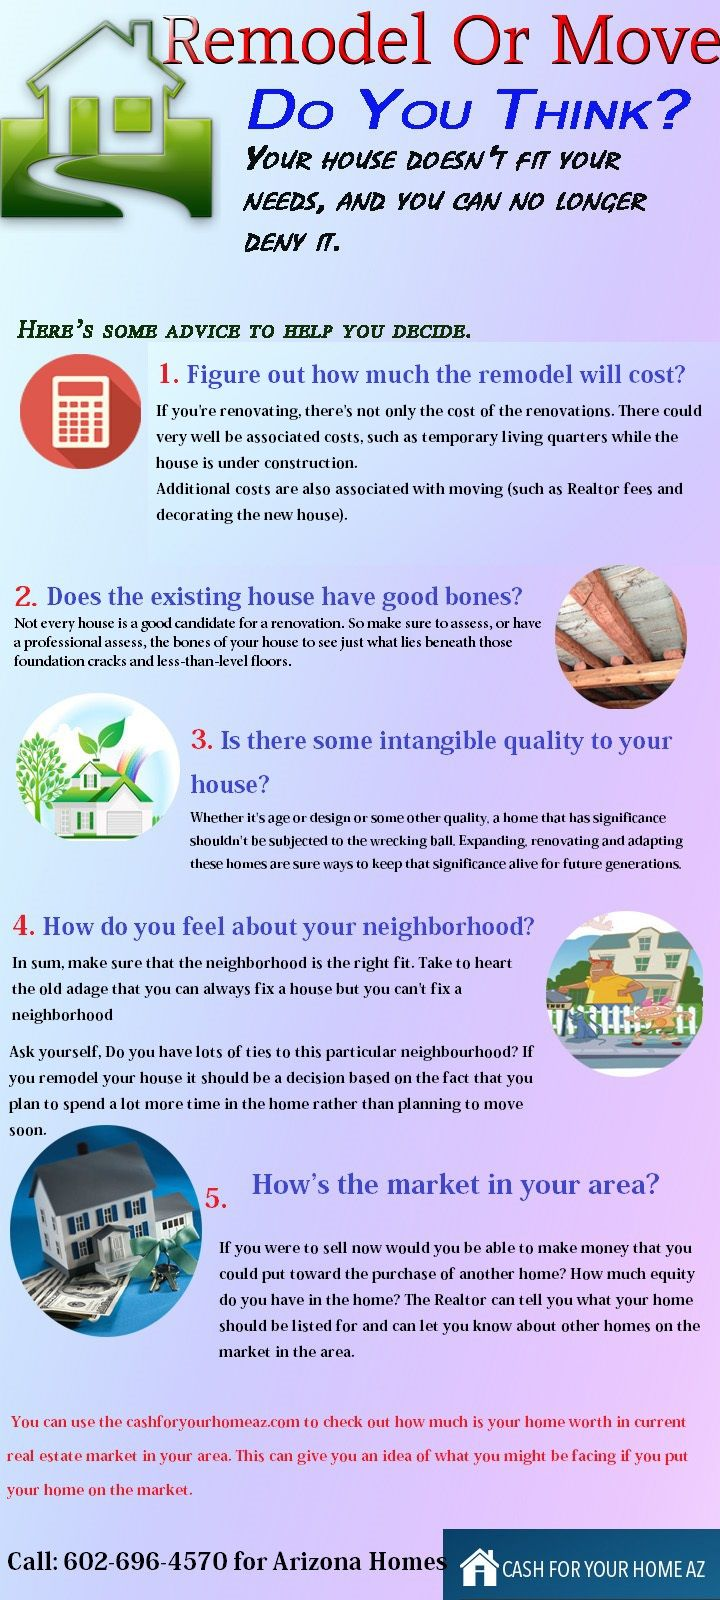 We have created an homeowners infographic to help you make this financial decision wisely.